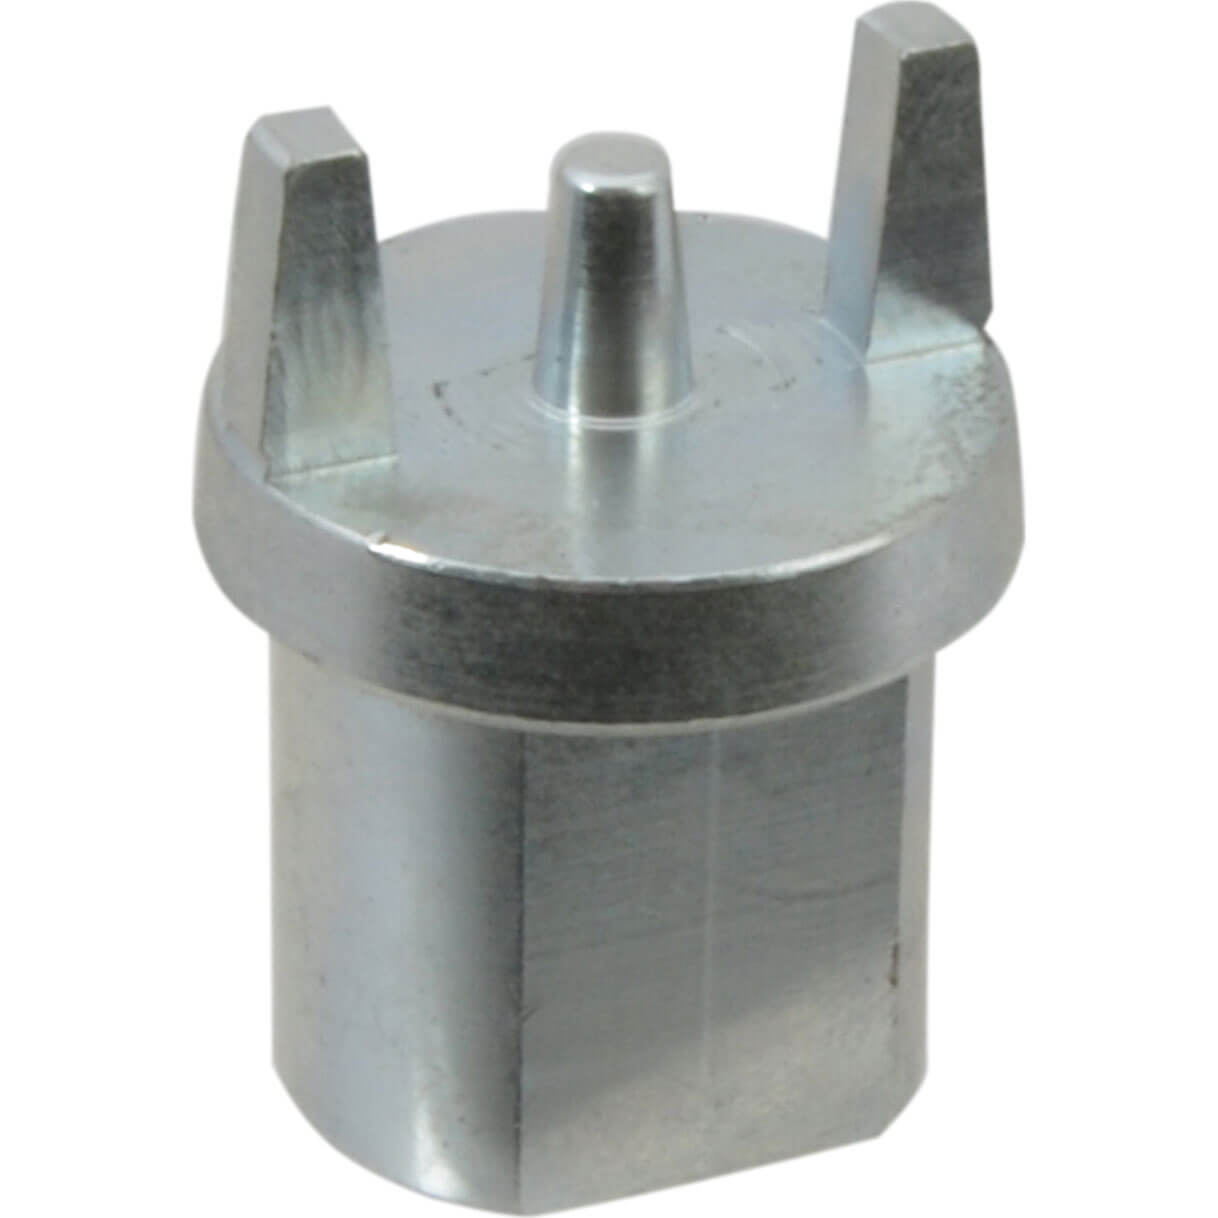 Image of Monument 4527C Grip+ T6 Three Pin Sink Rose Tool